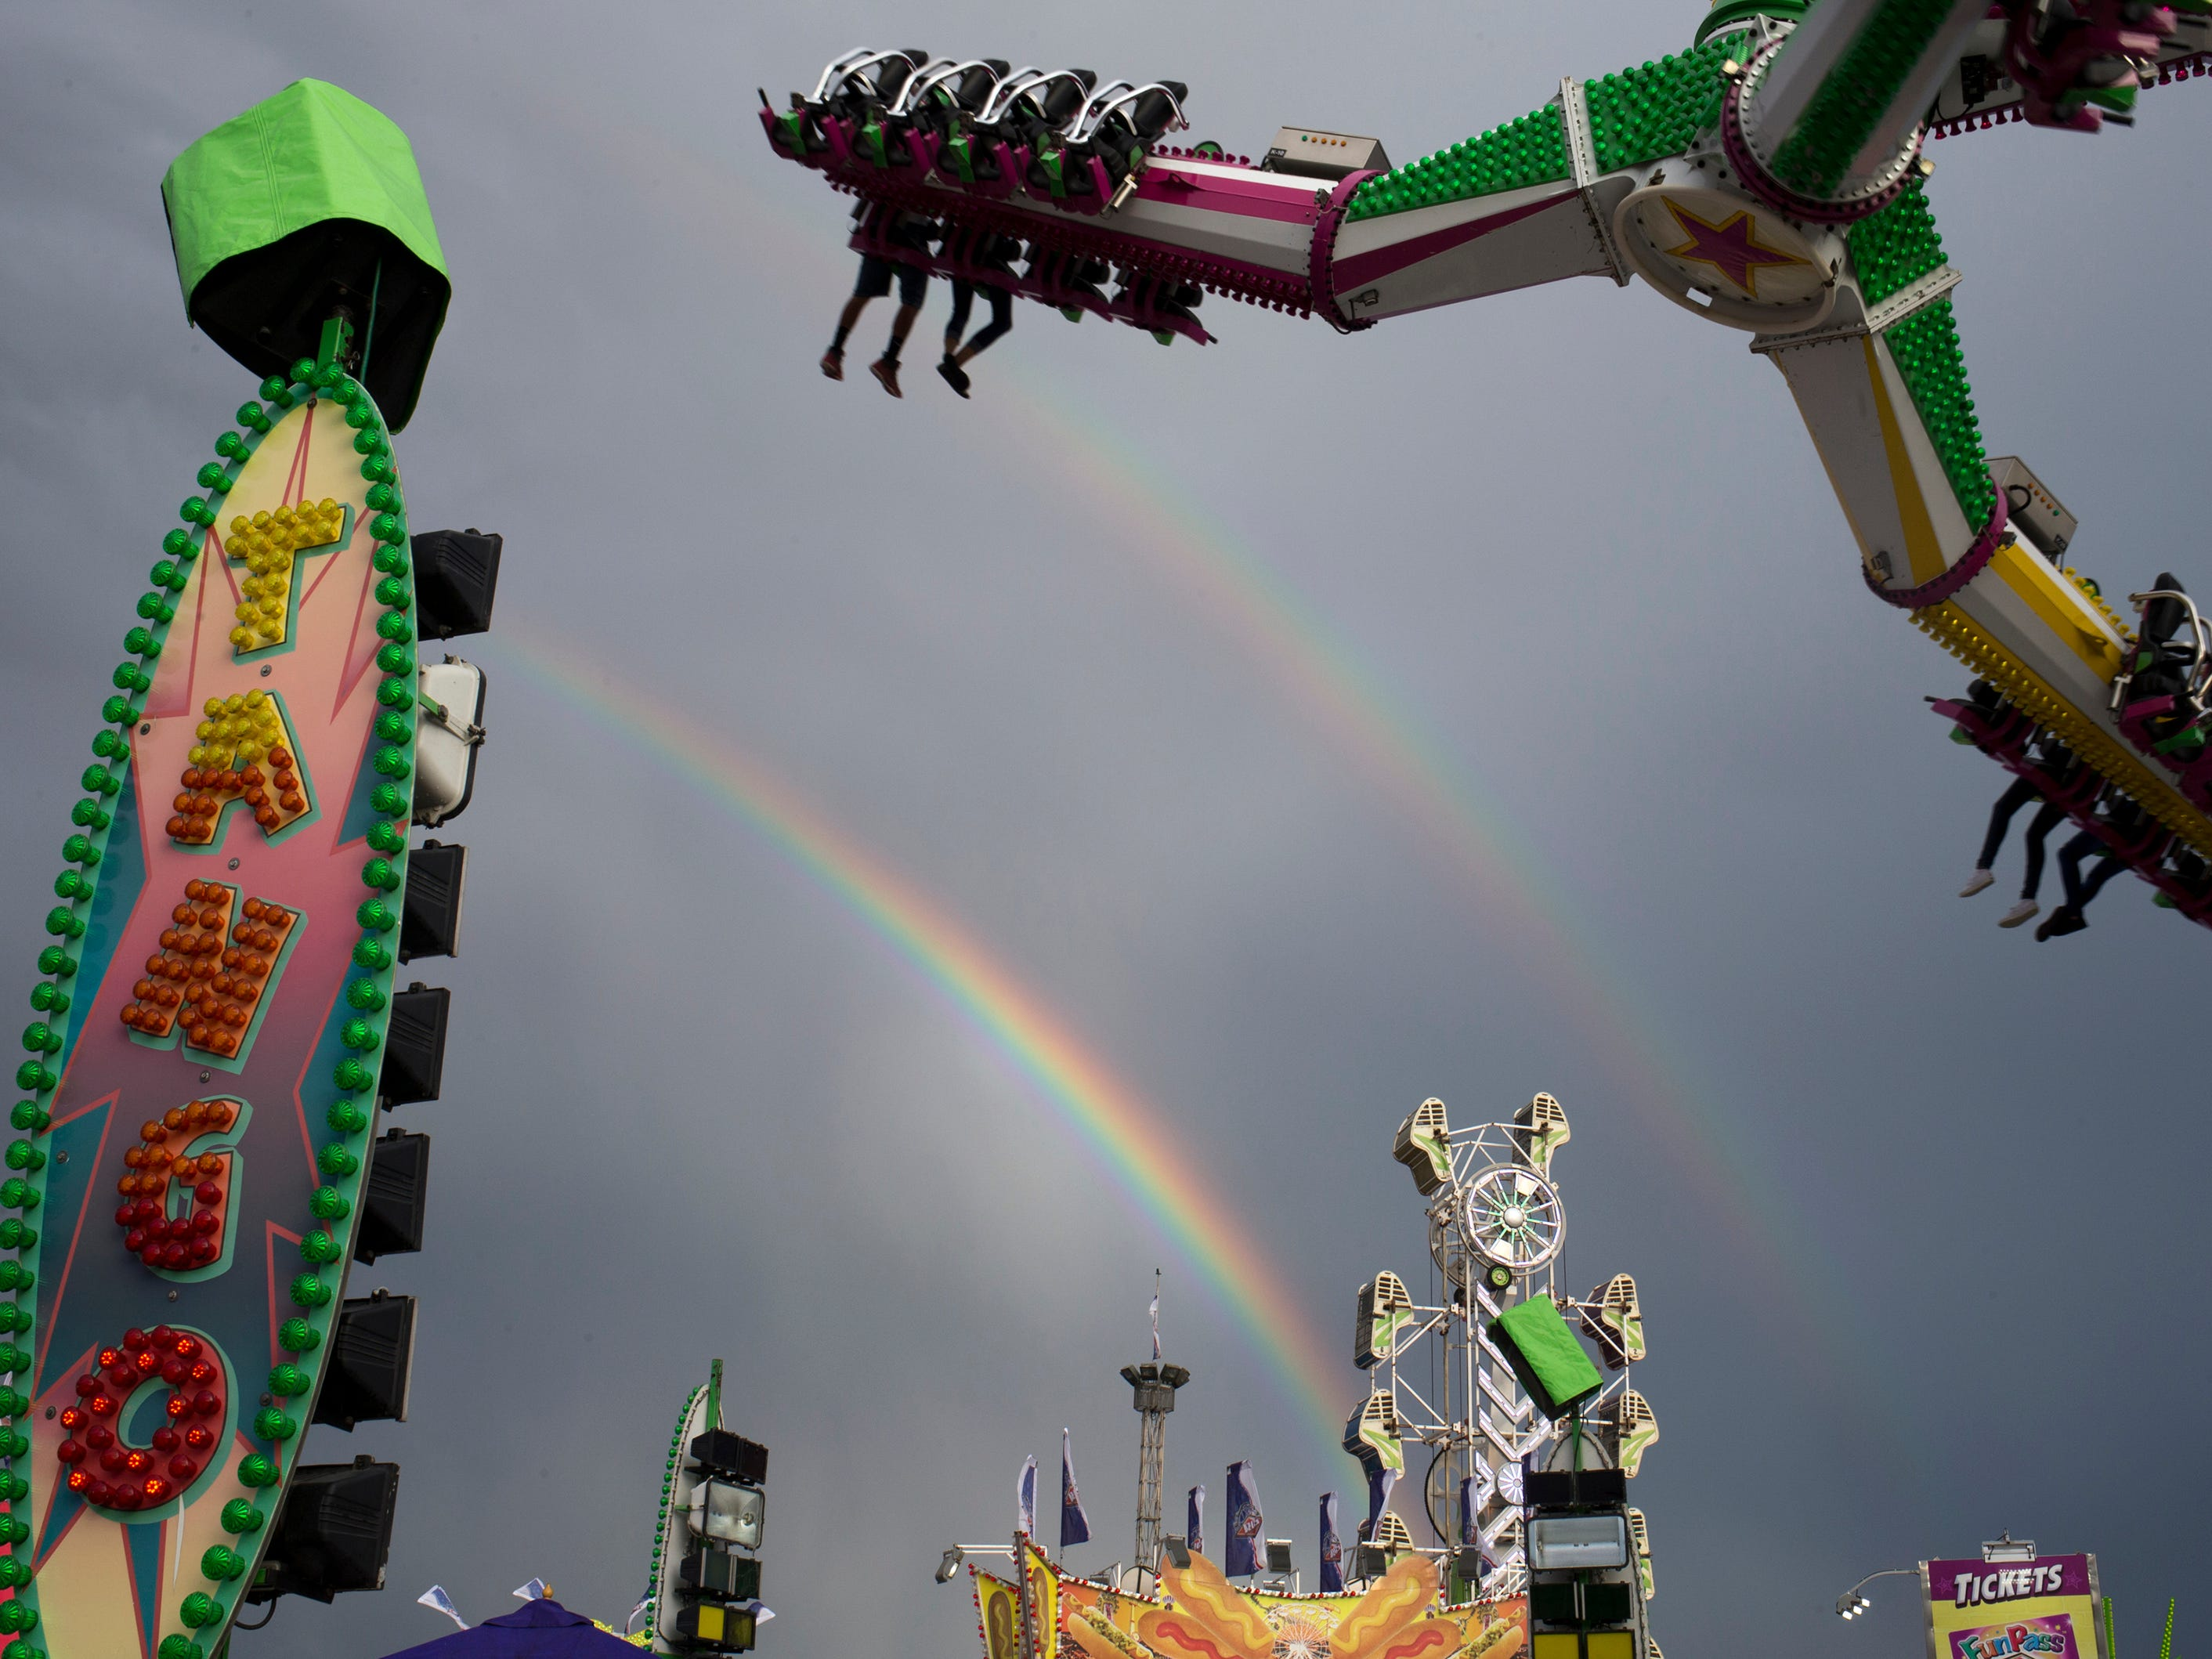 A double rainbow arches over the Arizona State Fair in Phoenix on October 16, 2015.